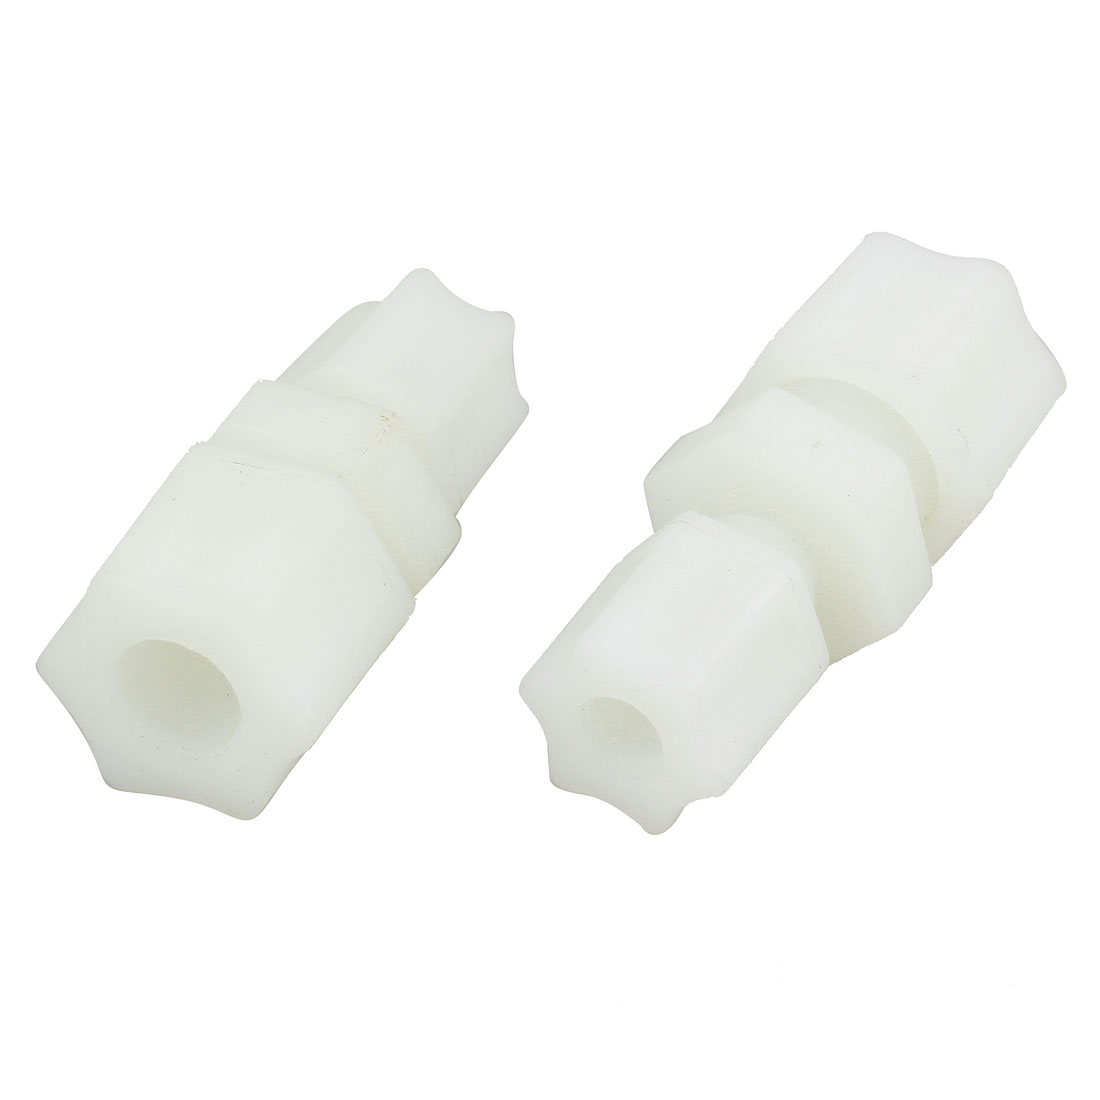 2 Pcs 1/4PT 3/8PT Thread Straight Connector Water Pipe Fitting